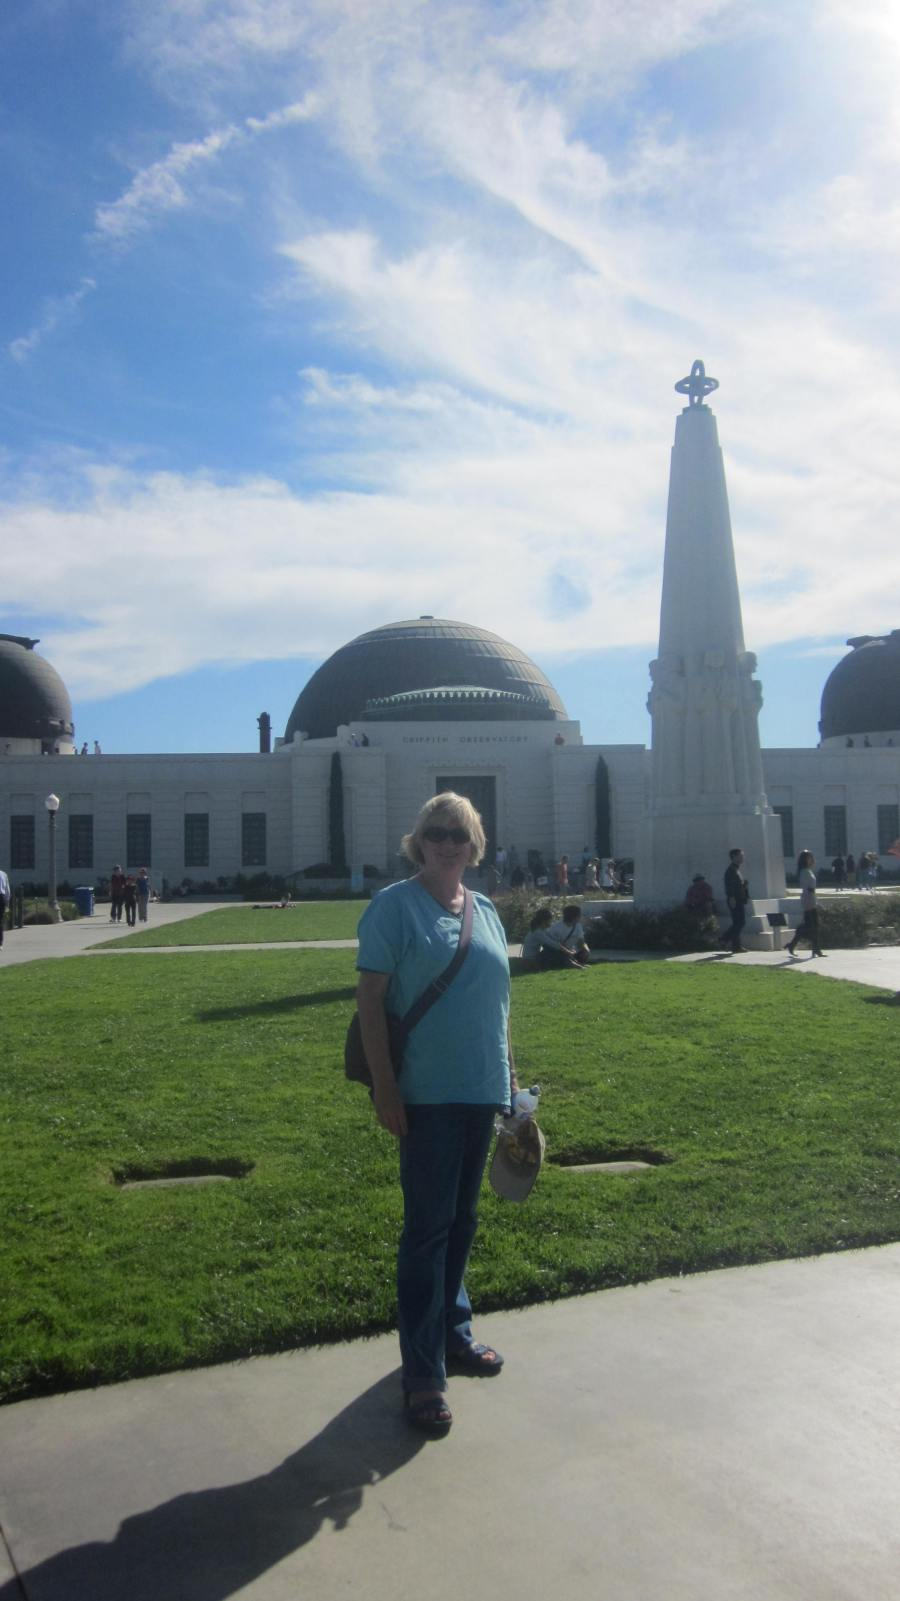 IMG 3047 - Exploring Los Angeles by public transport - The Griffith Observatory